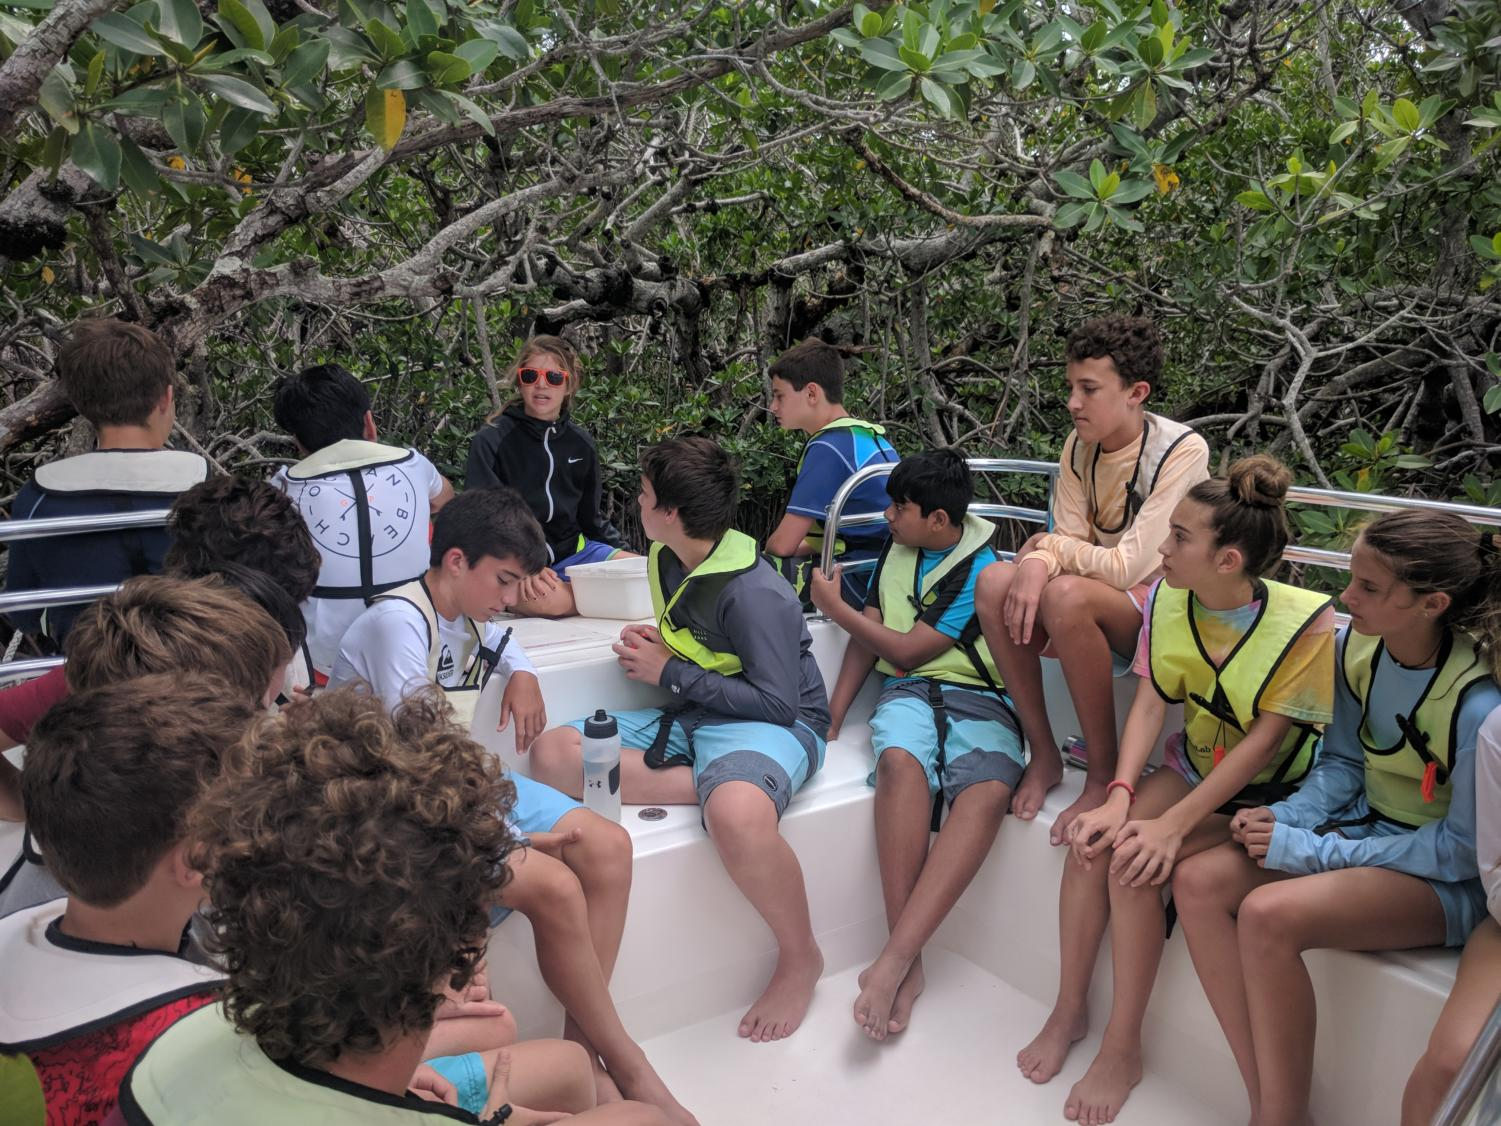 The students learn about mangroves and the coastal ecosystem during one of their boat rides in the Keys.